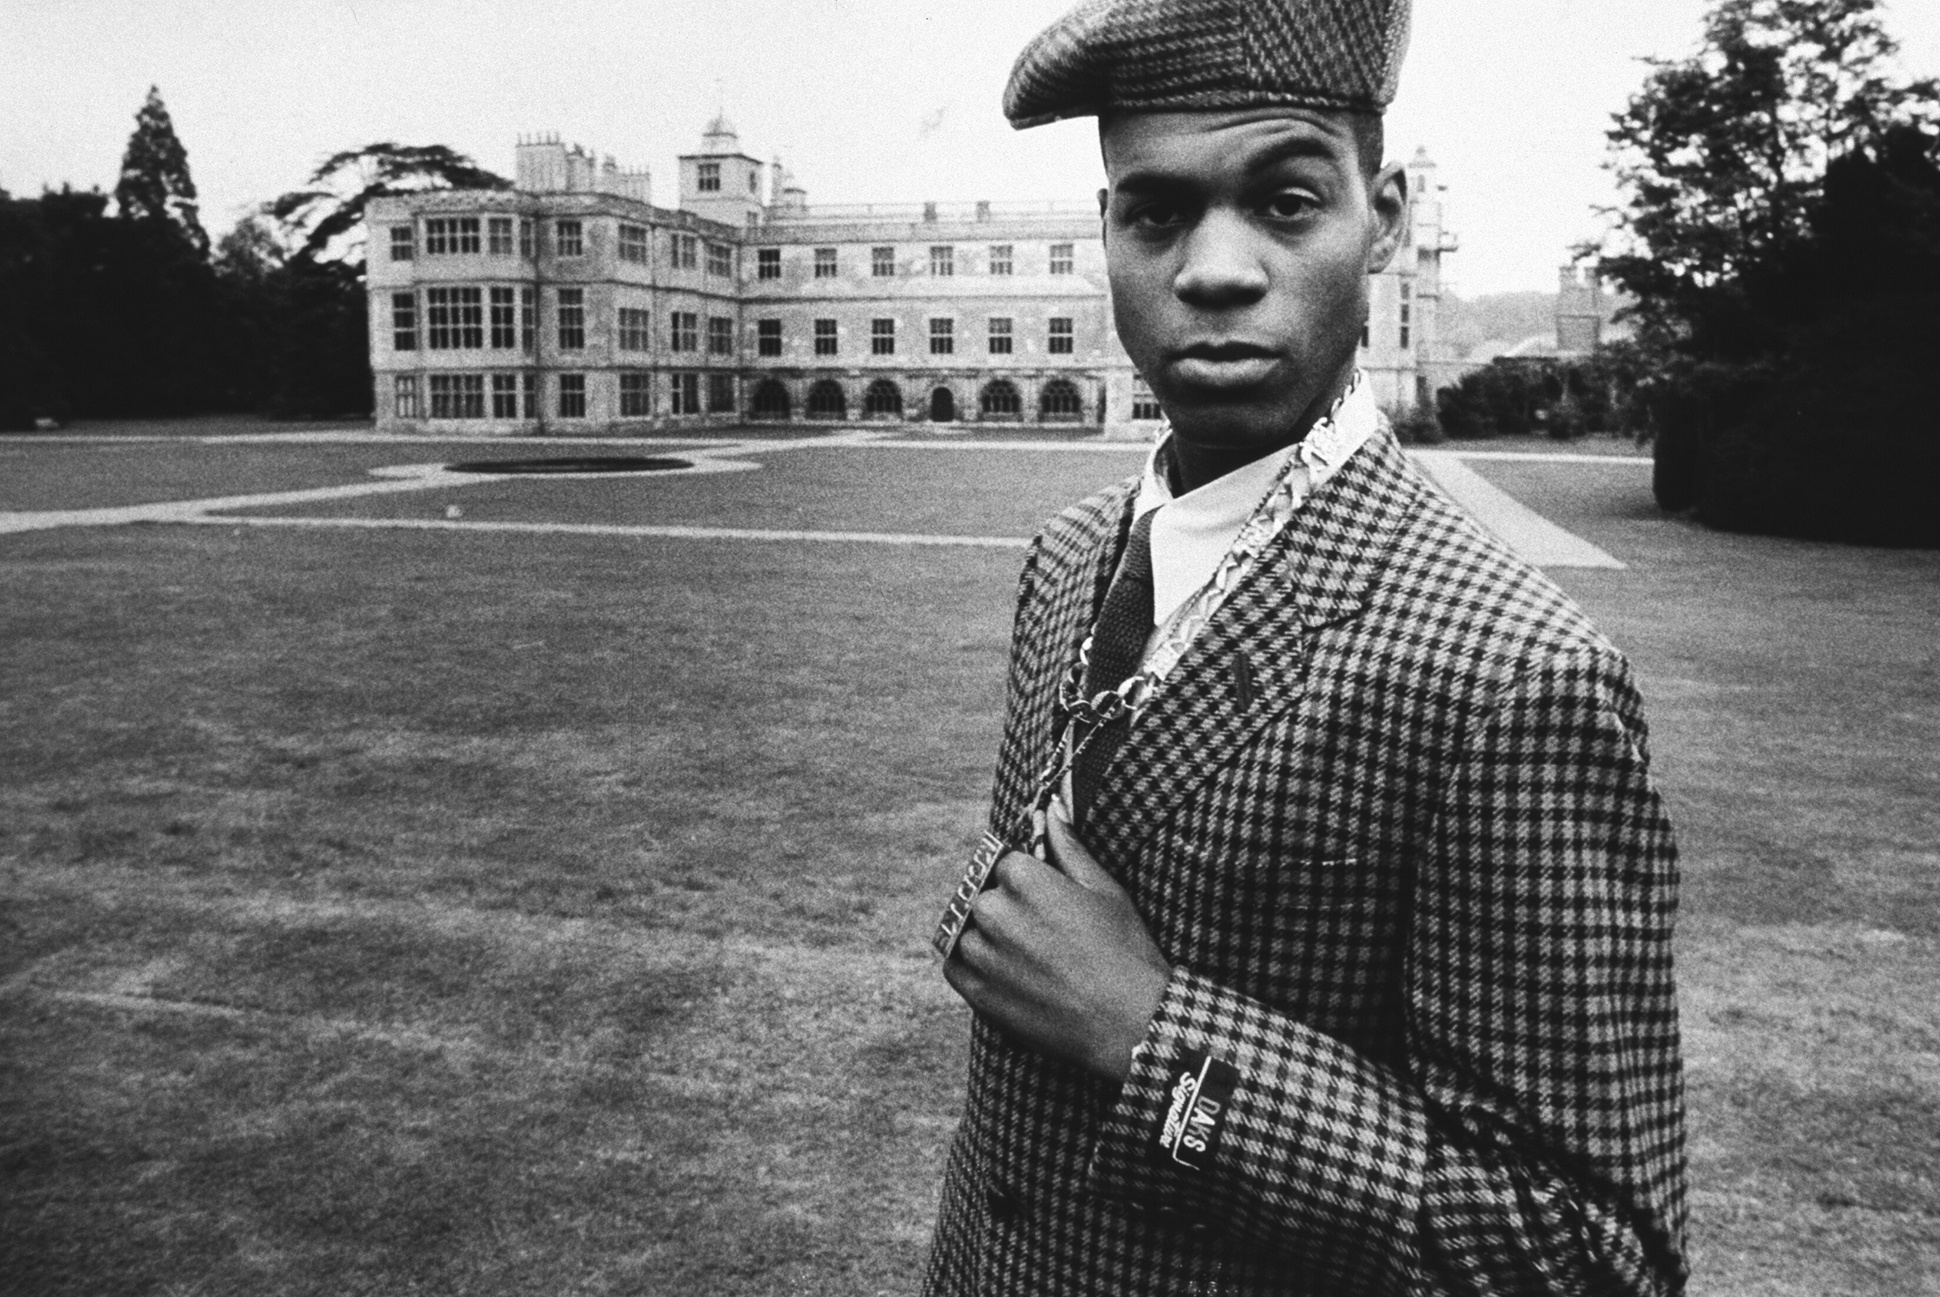 British Hip Hop artist MC Duke in a tweed suit outside a stately home, 1980s by Normski